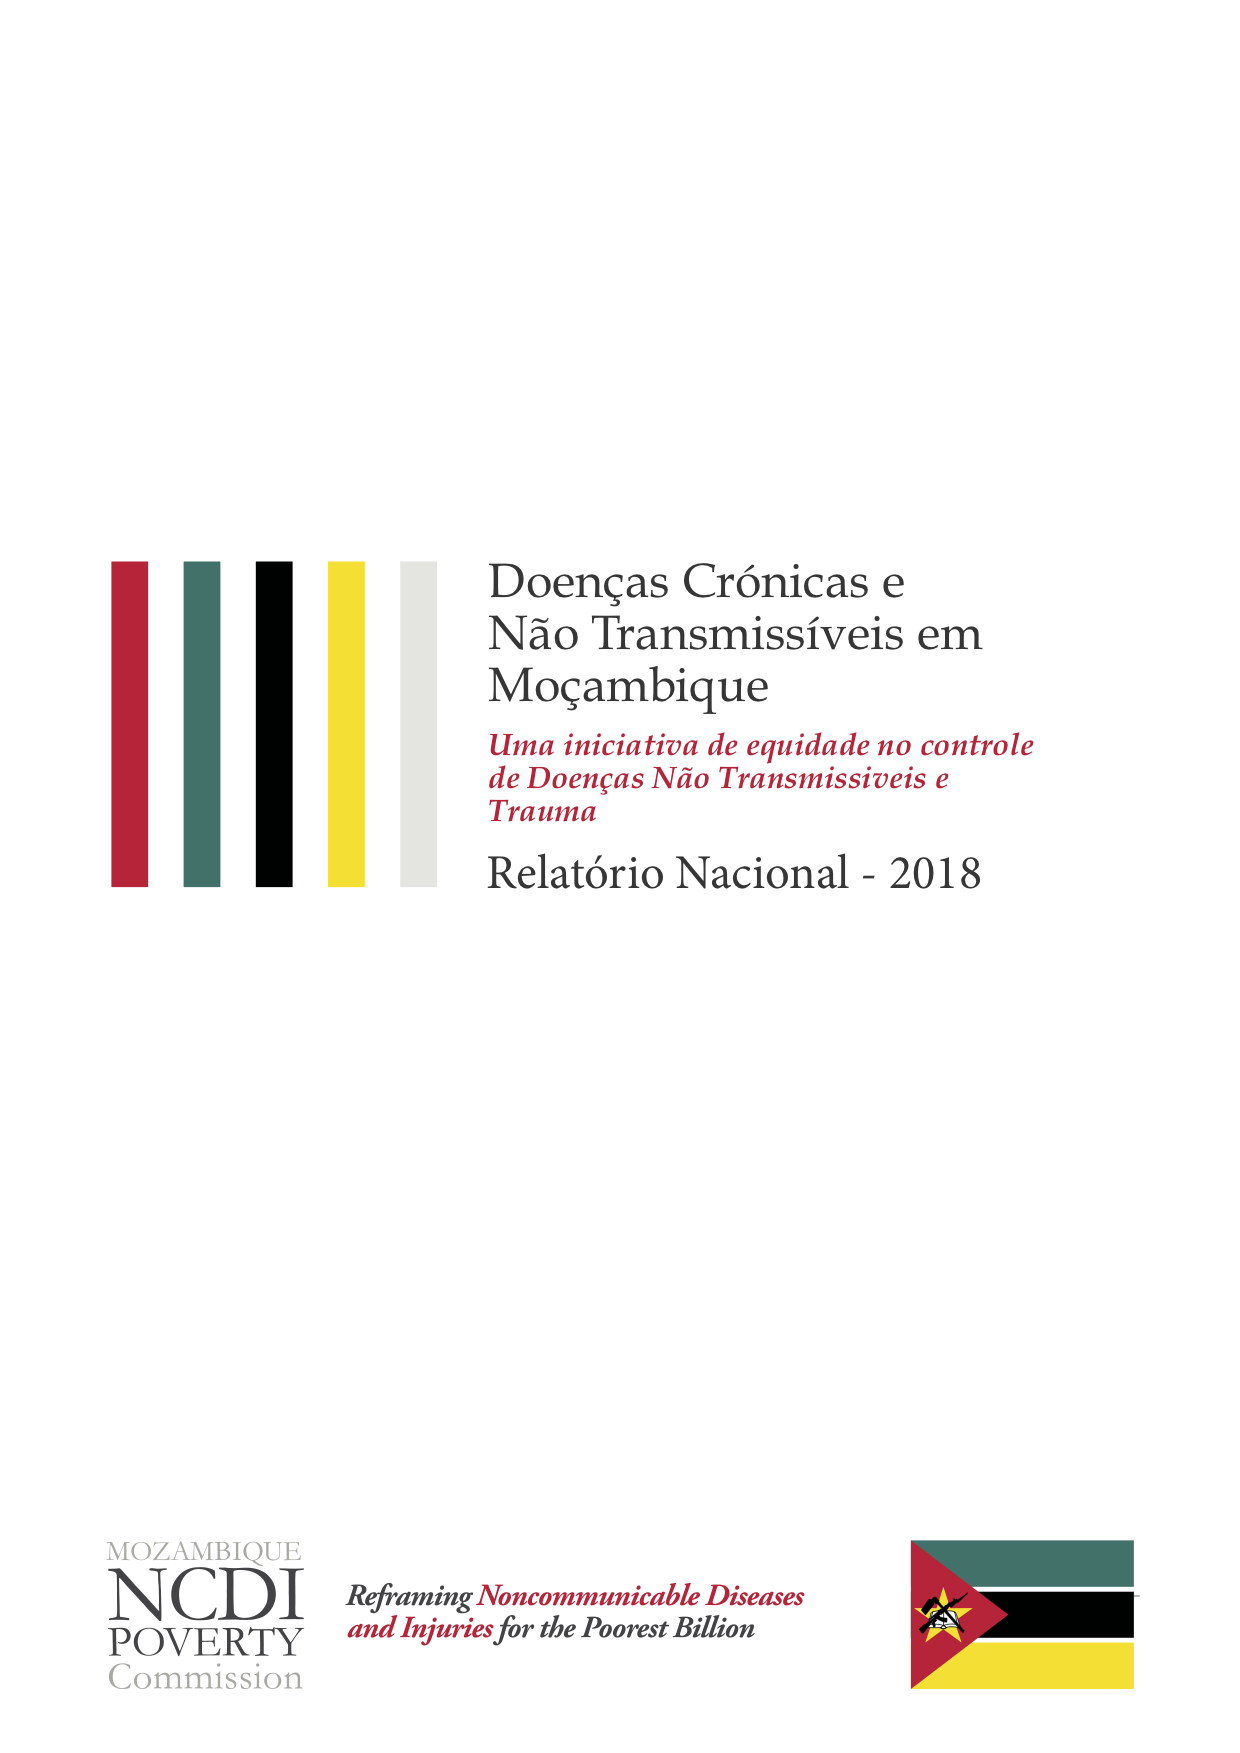 Mozambique NCDI Poverty Commission Report